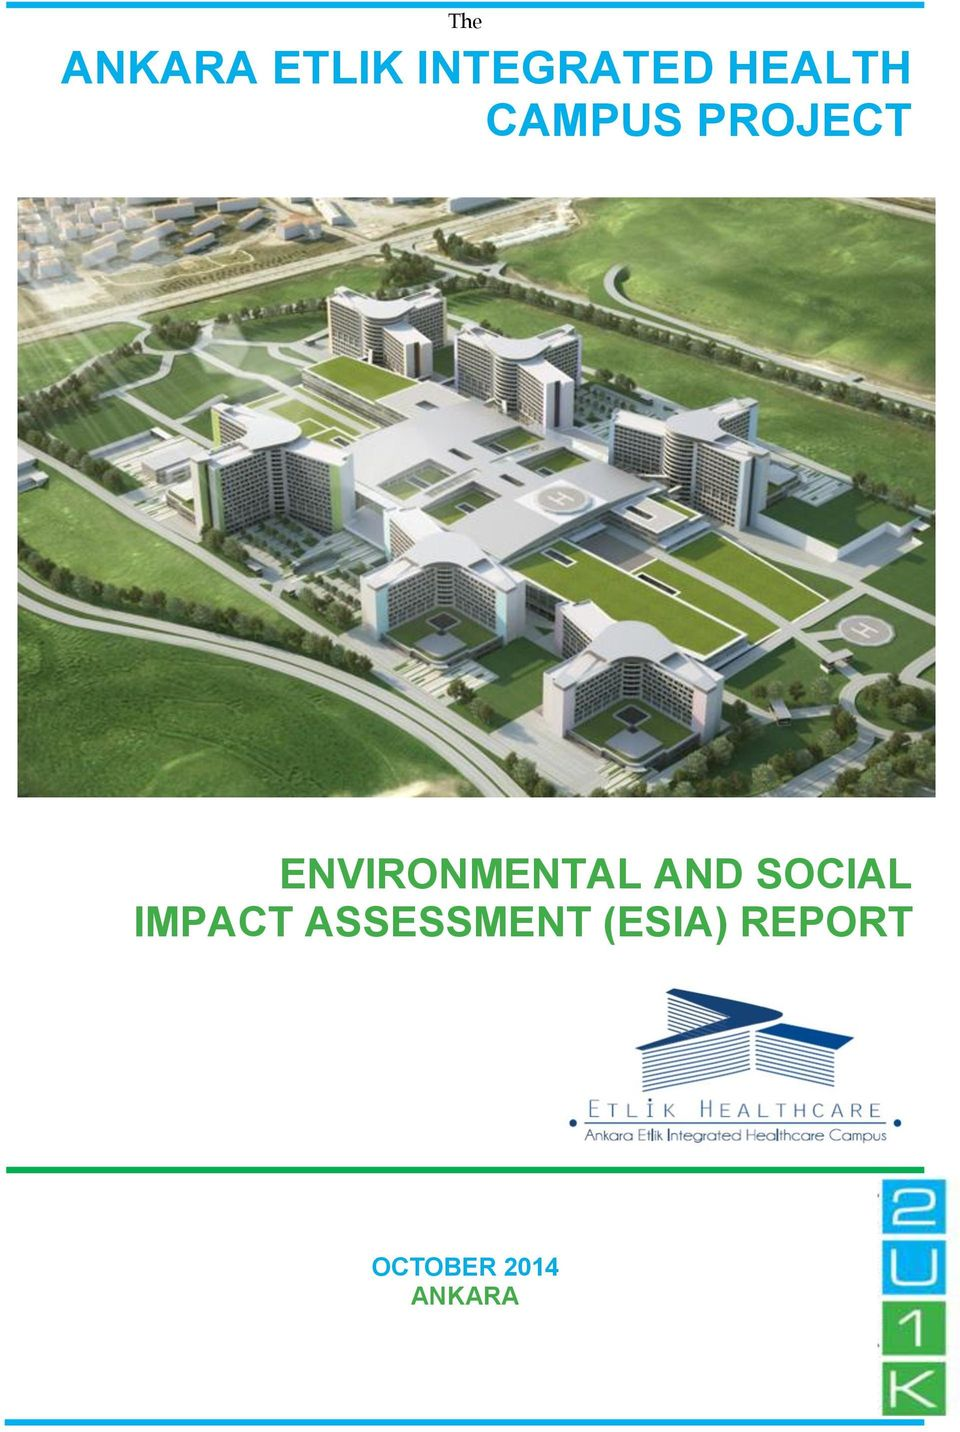 effects of marginalizing social and environmental reporting Unifruit ethiopia environmental & social impact assessment report: raya valley i environmental and social impact assessment report tigray region raya azebo district.